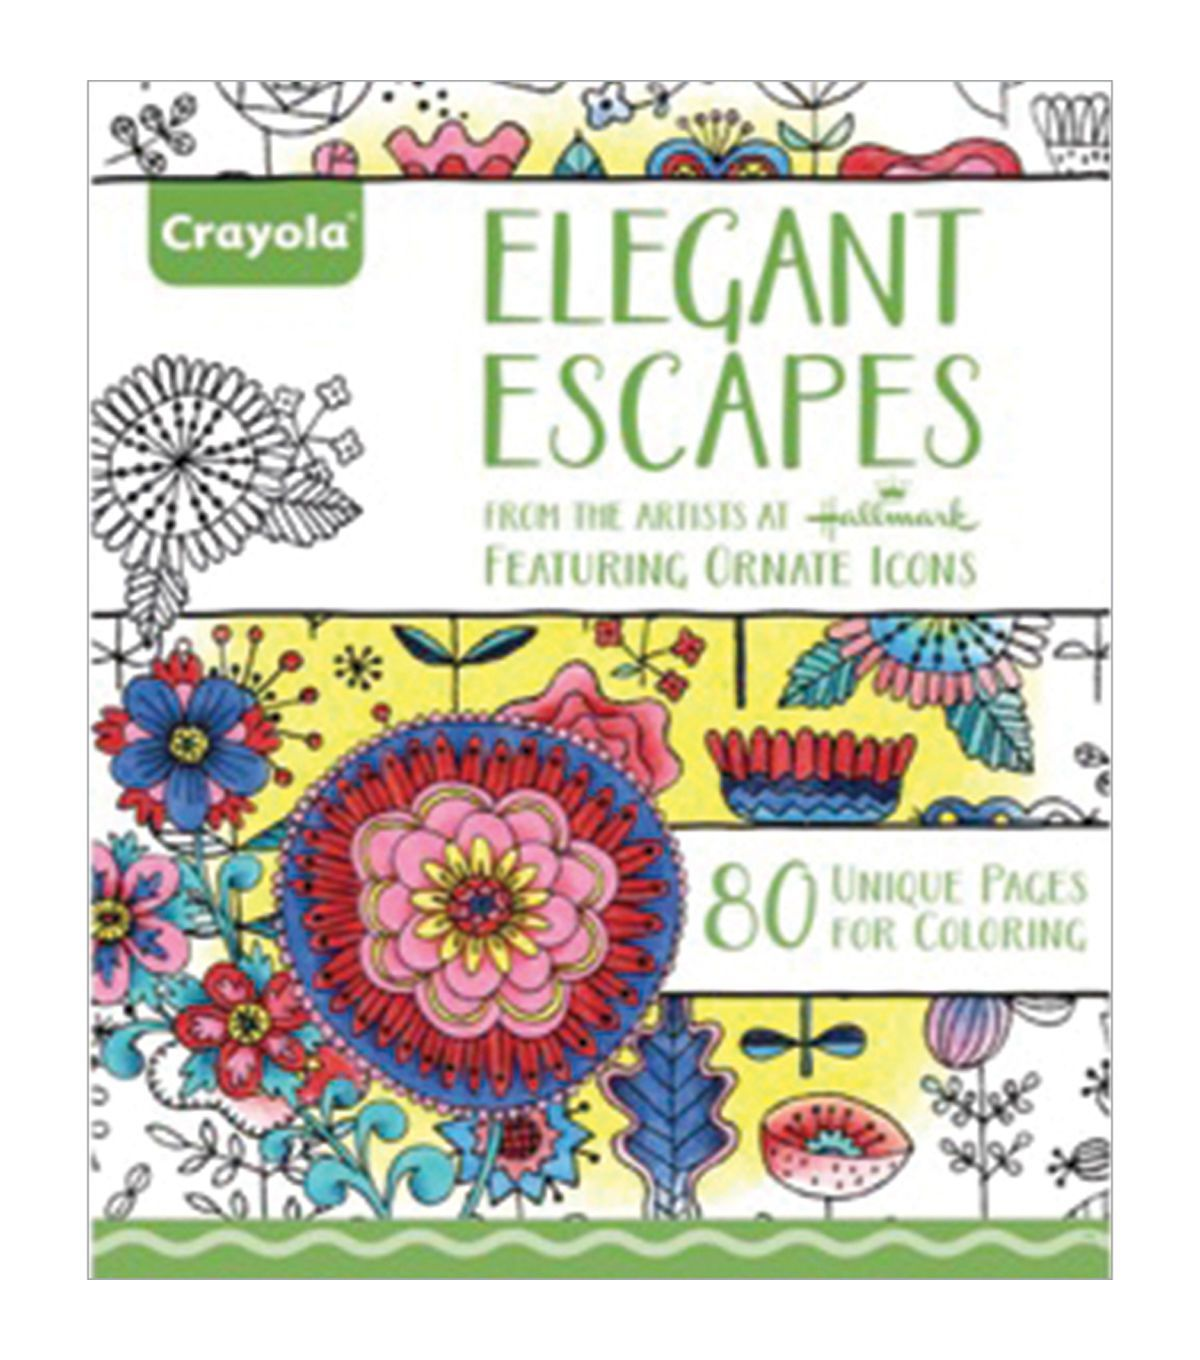 Swearing colouring in book nz - Crayola Elegant Escapes Coloring Book